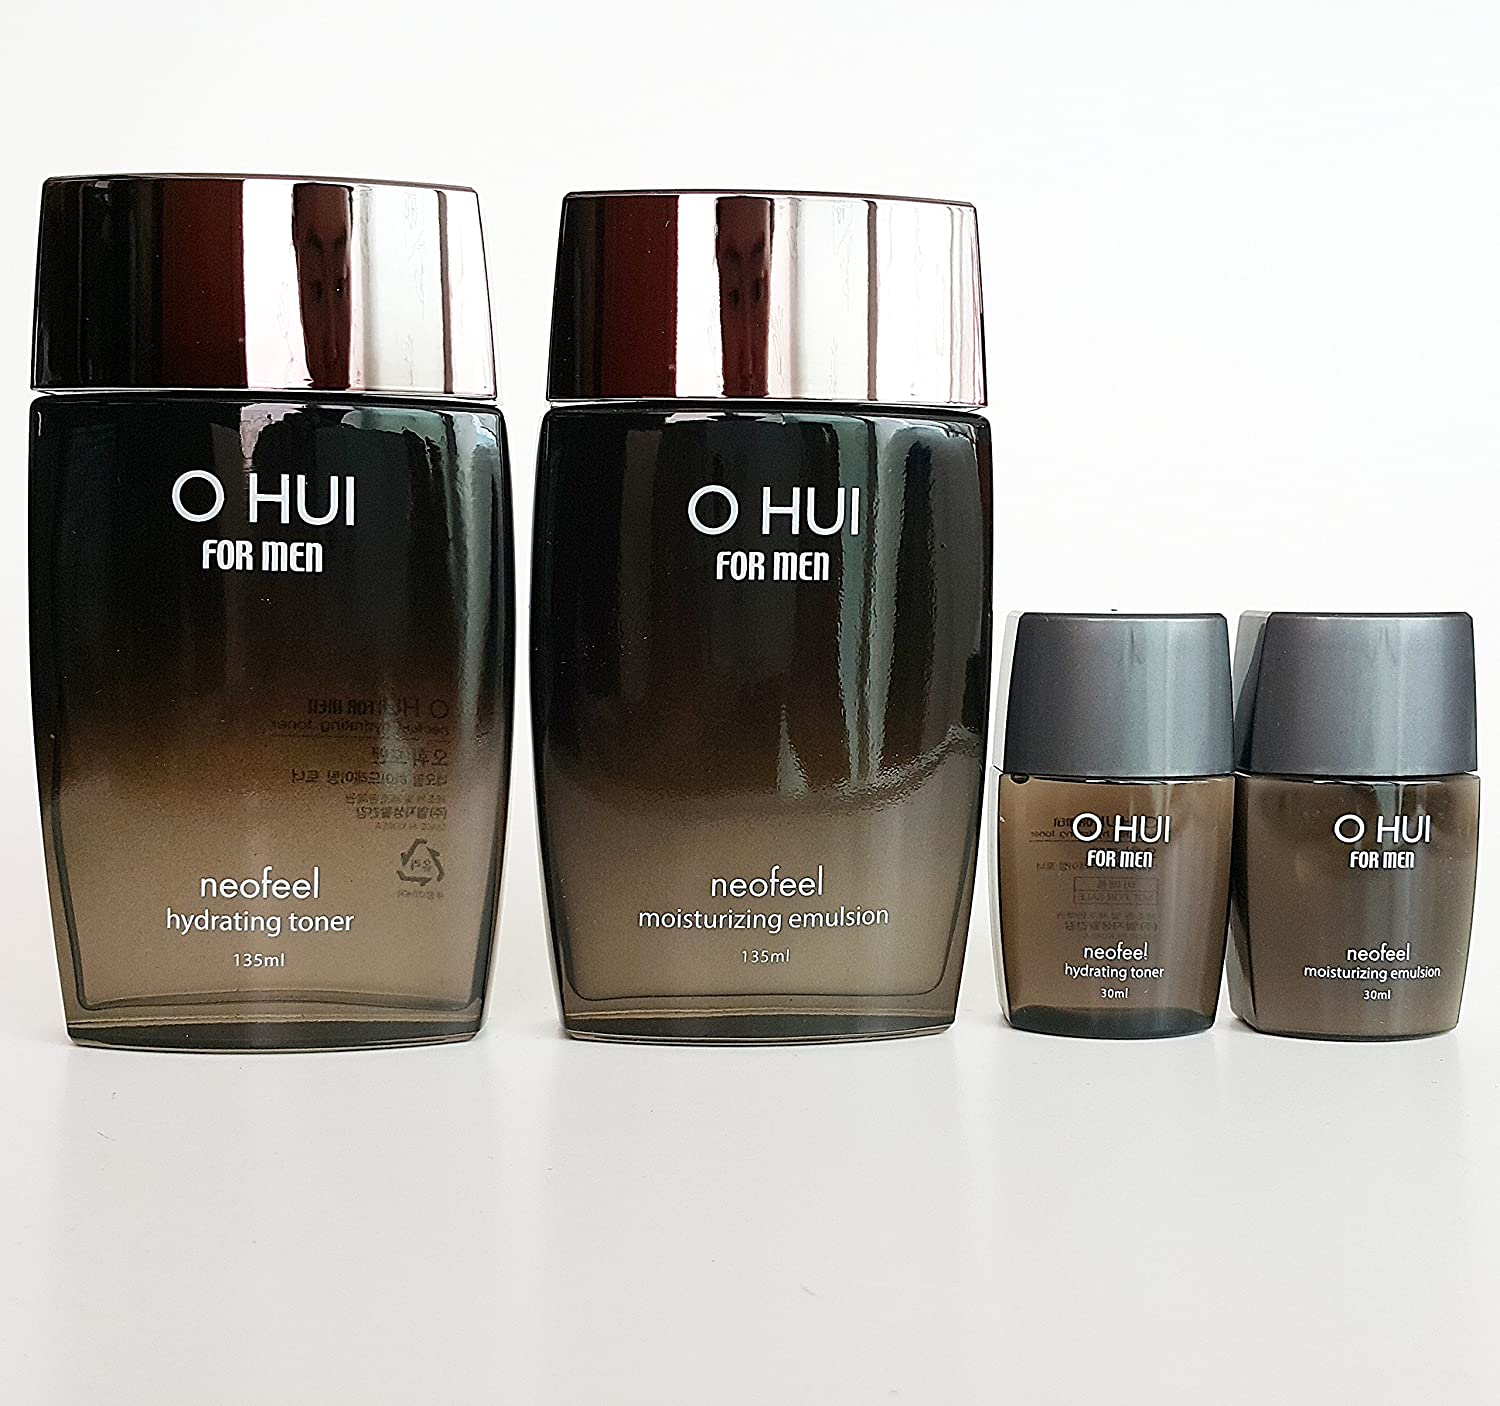 Image result for Ohui For Men Neofeel 2 set